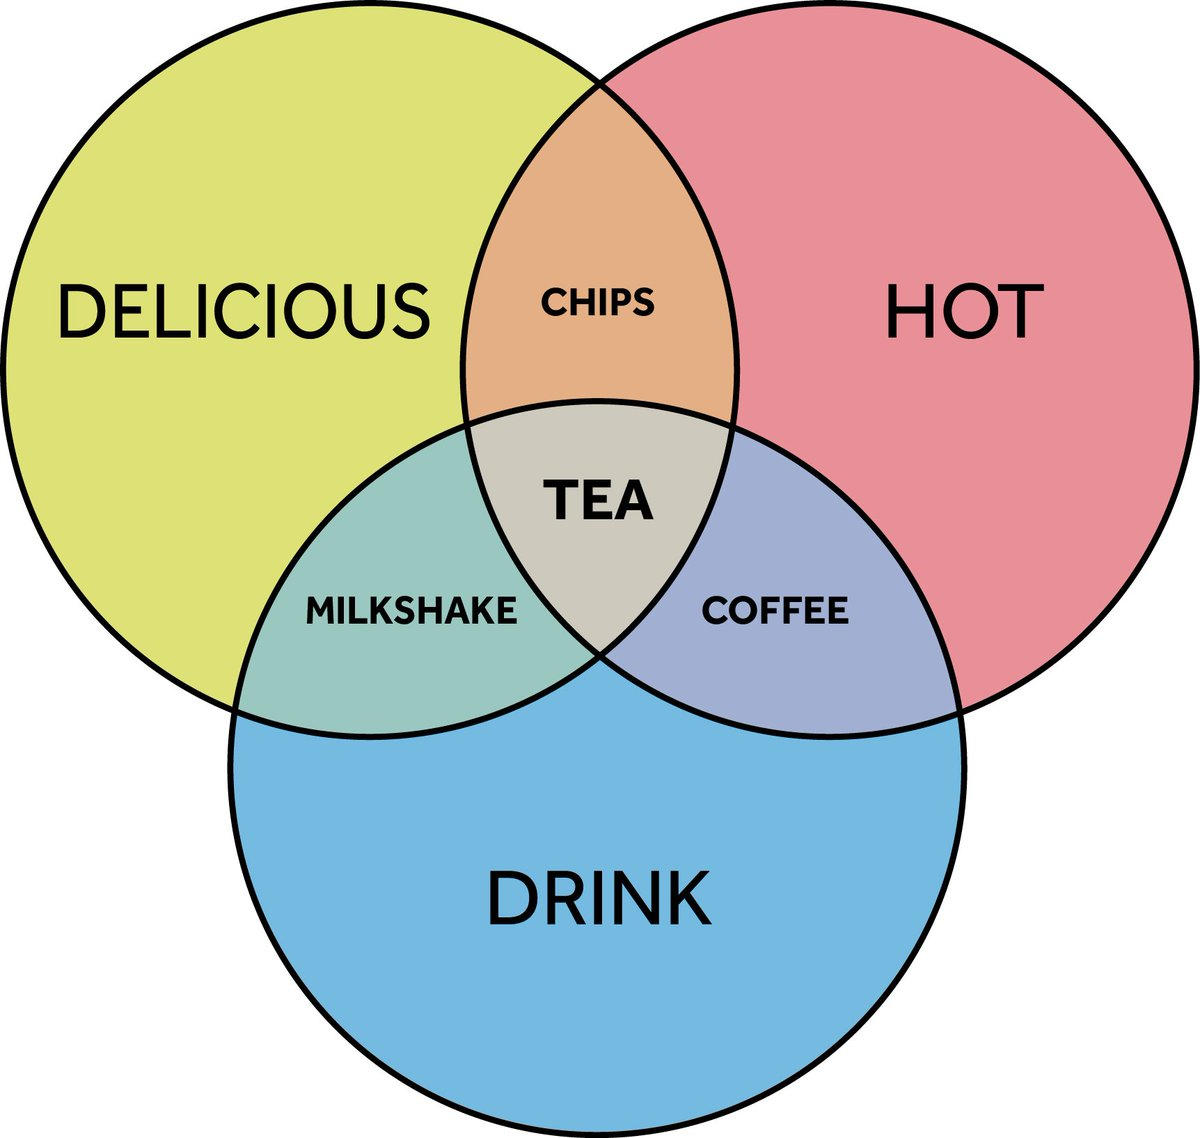 Yorkshire tea on twitter happy birthday to john venn yorkshire yorkshire tea on twitter happy birthday to john venn yorkshire born creator of the venn diagram weve made this in his honour pooptronica Choice Image